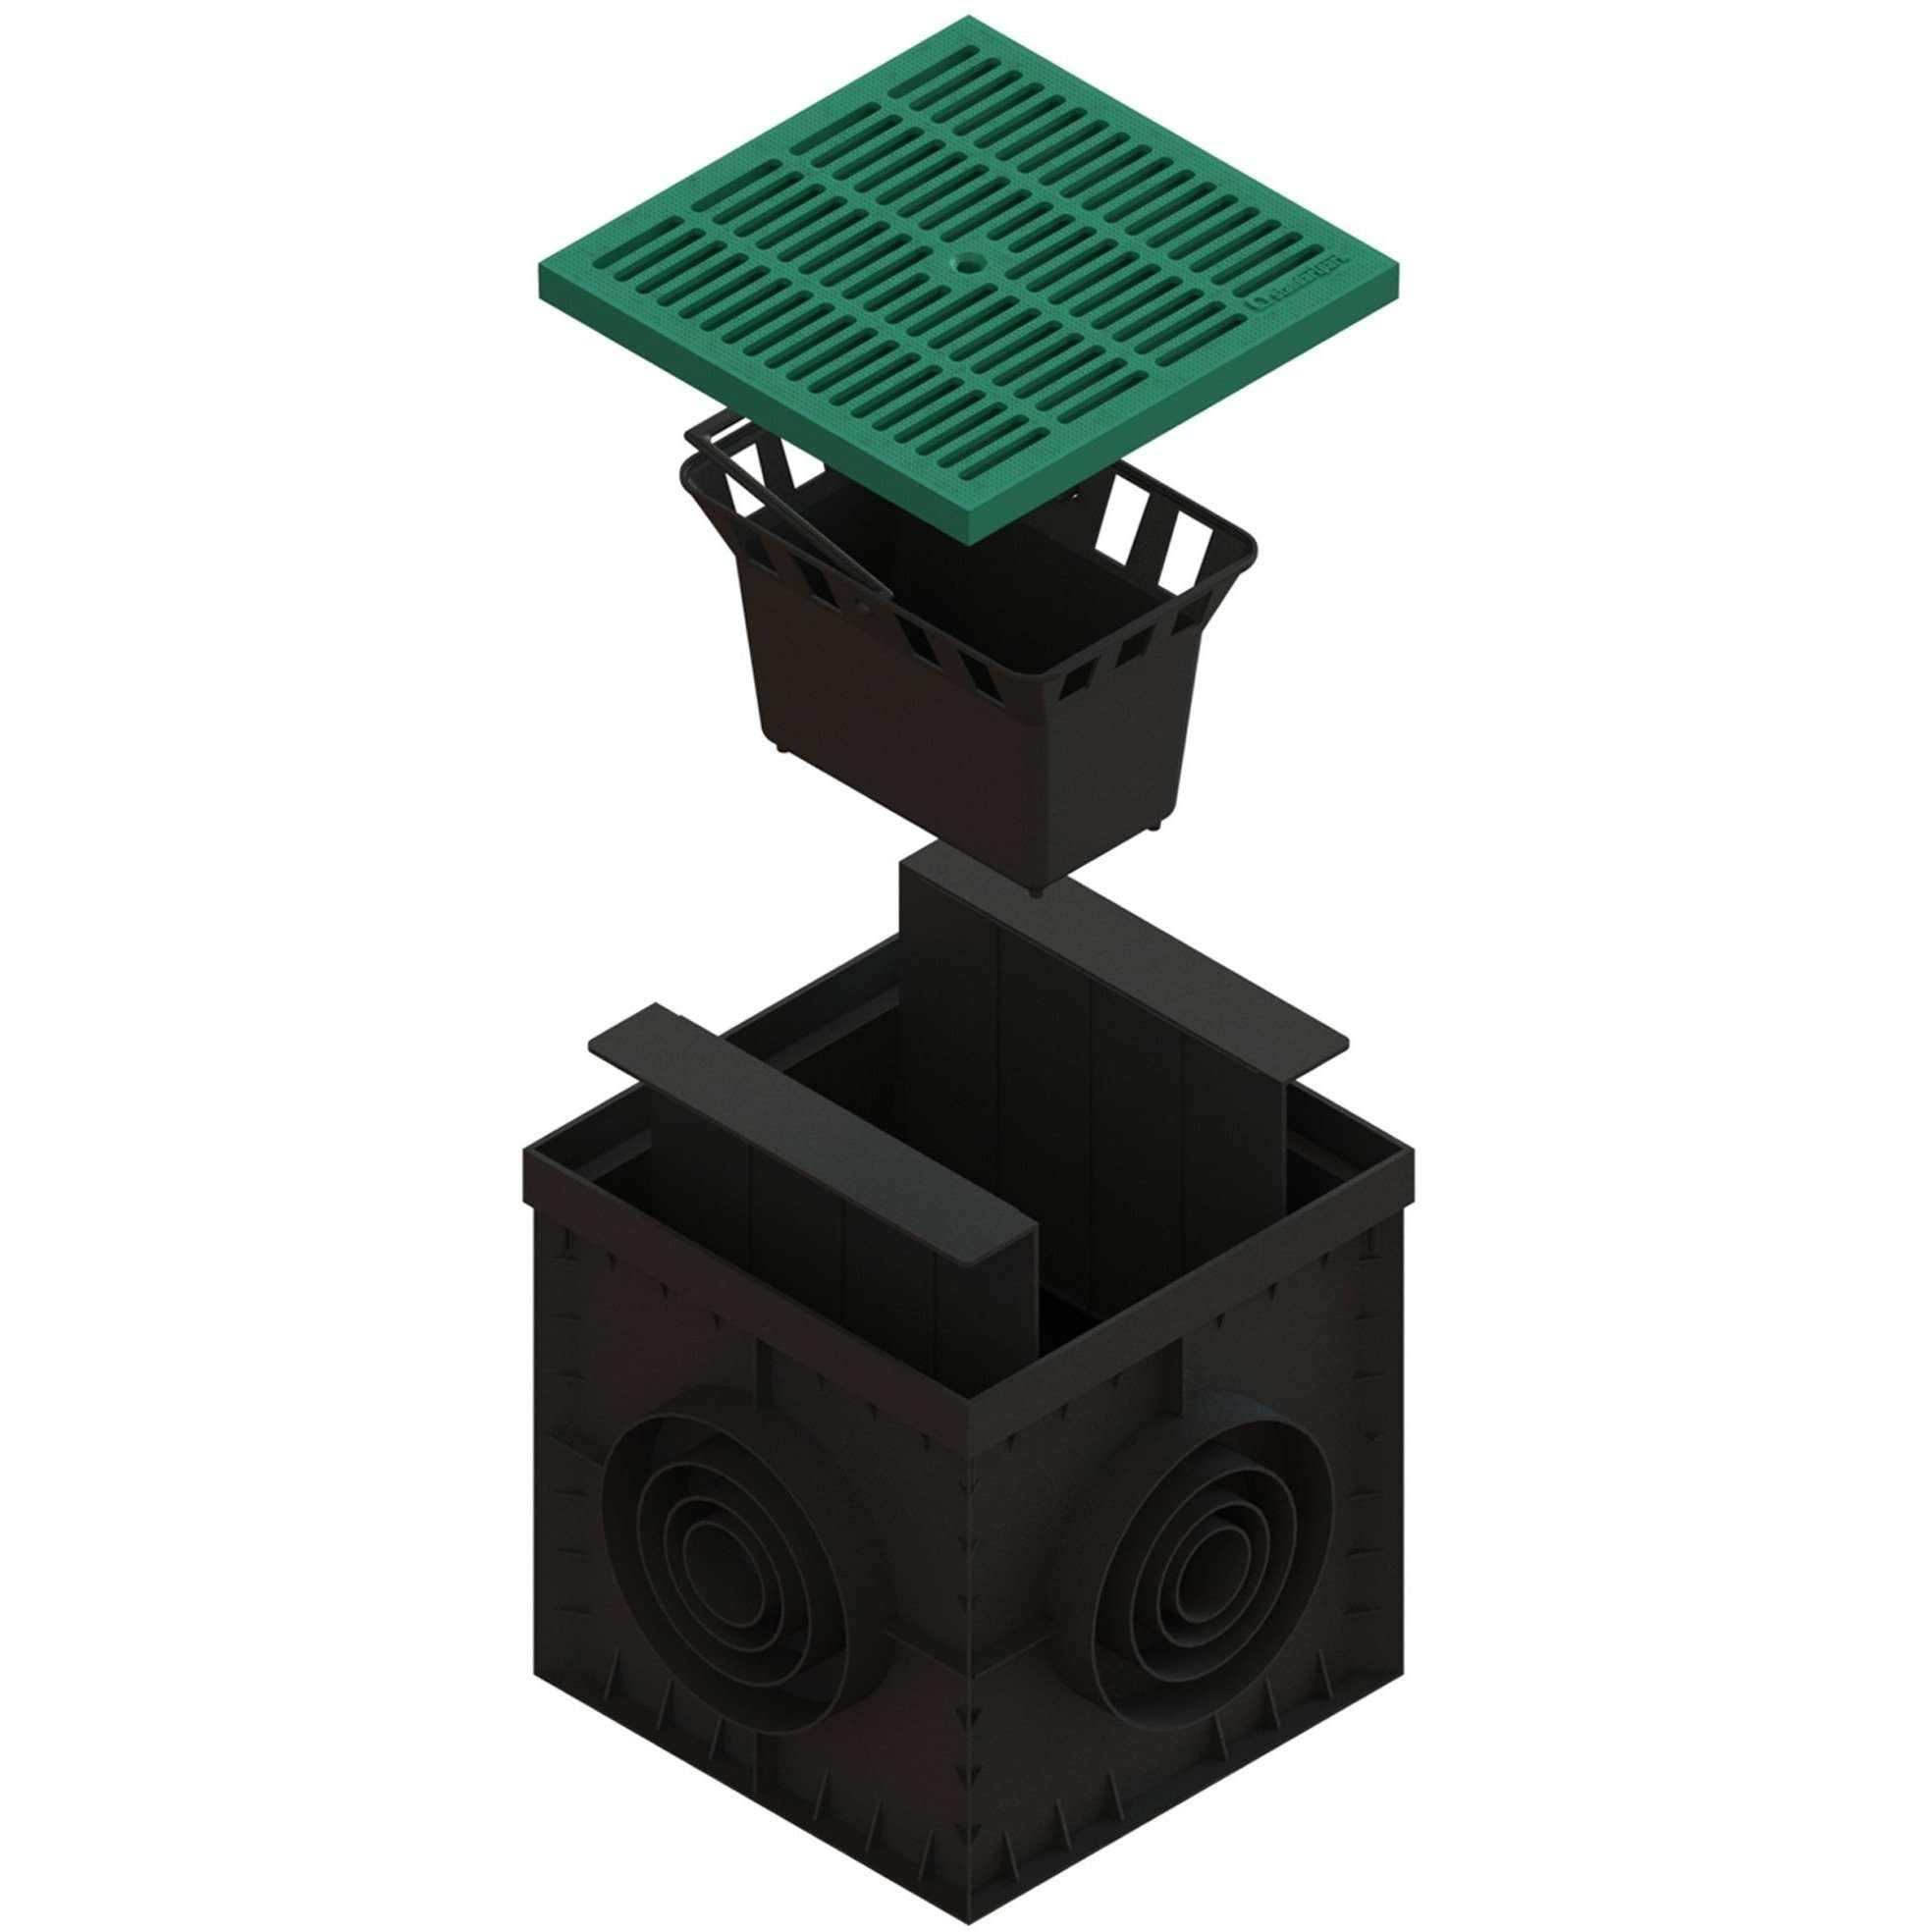 12x12 Catch Basin w/ Green Grating PKG Catch Basins Standartpark